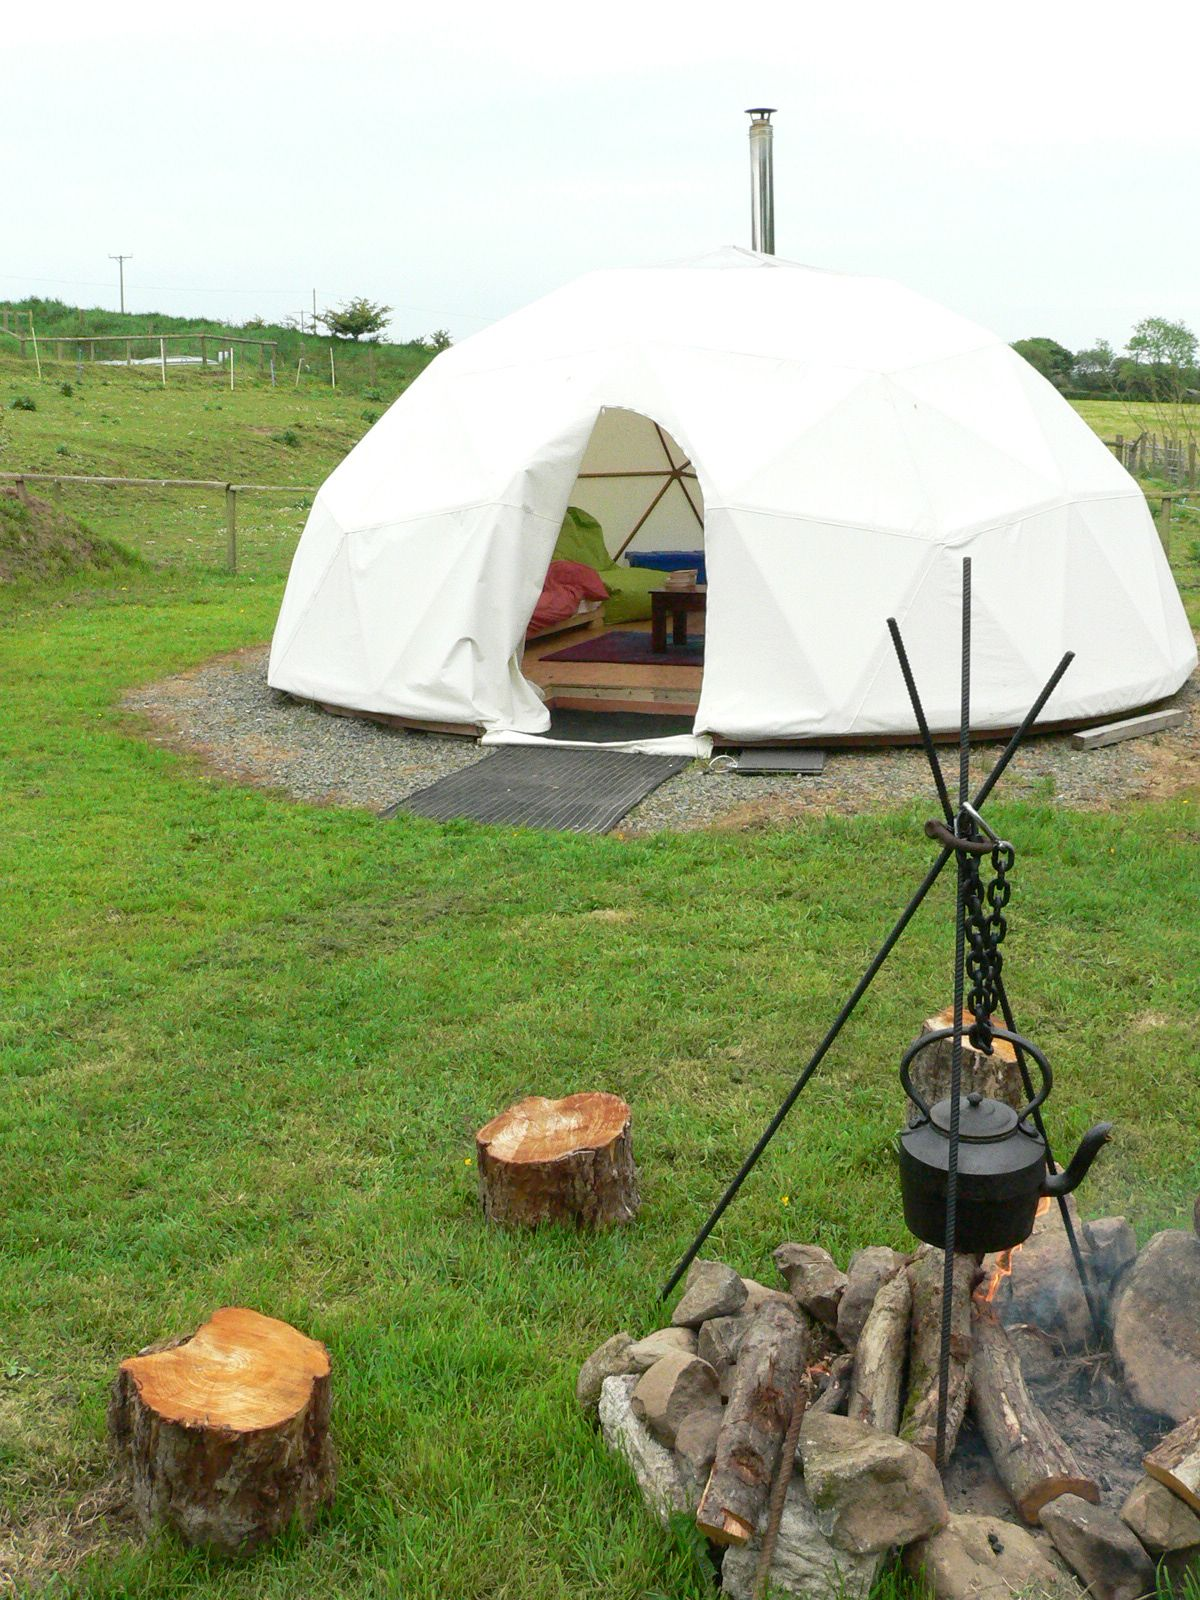 geodesic dome homes | Geodesic dome holidays at Preseli Venture & geodesic dome homes | Geodesic dome holidays at Preseli Venture ...